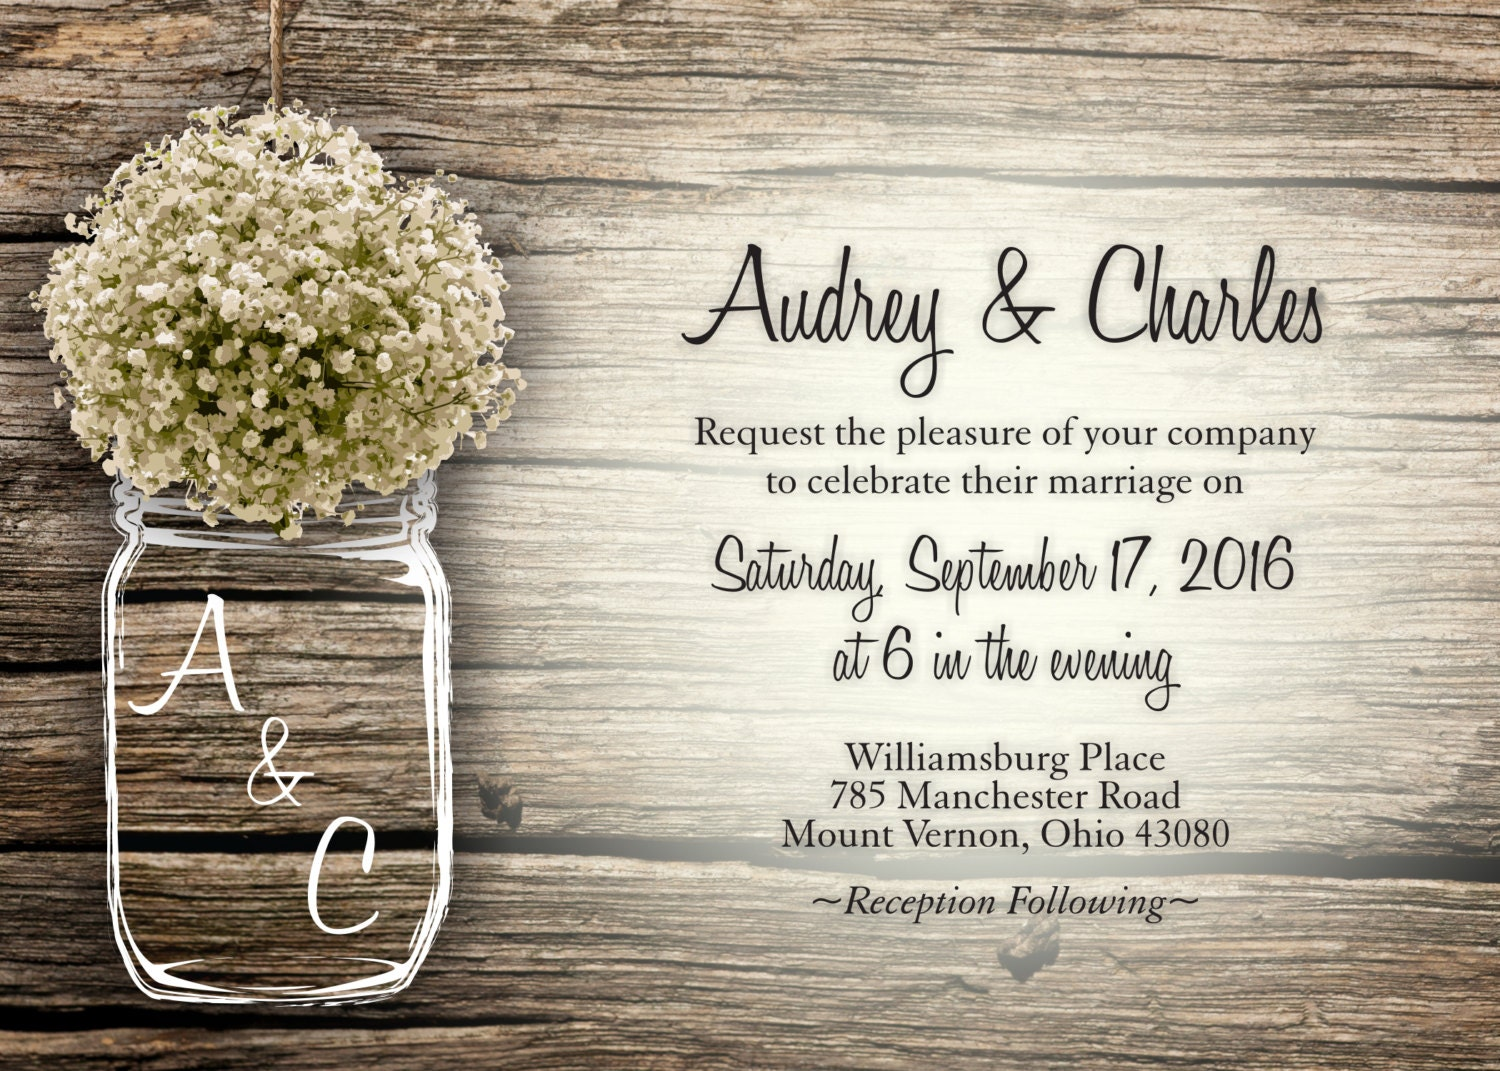 mason jar babys breath flowers rustic wedding invitation set printed cheap wedding invitations unique custom invitations affordable - Cheap Wedding Invitations Sets